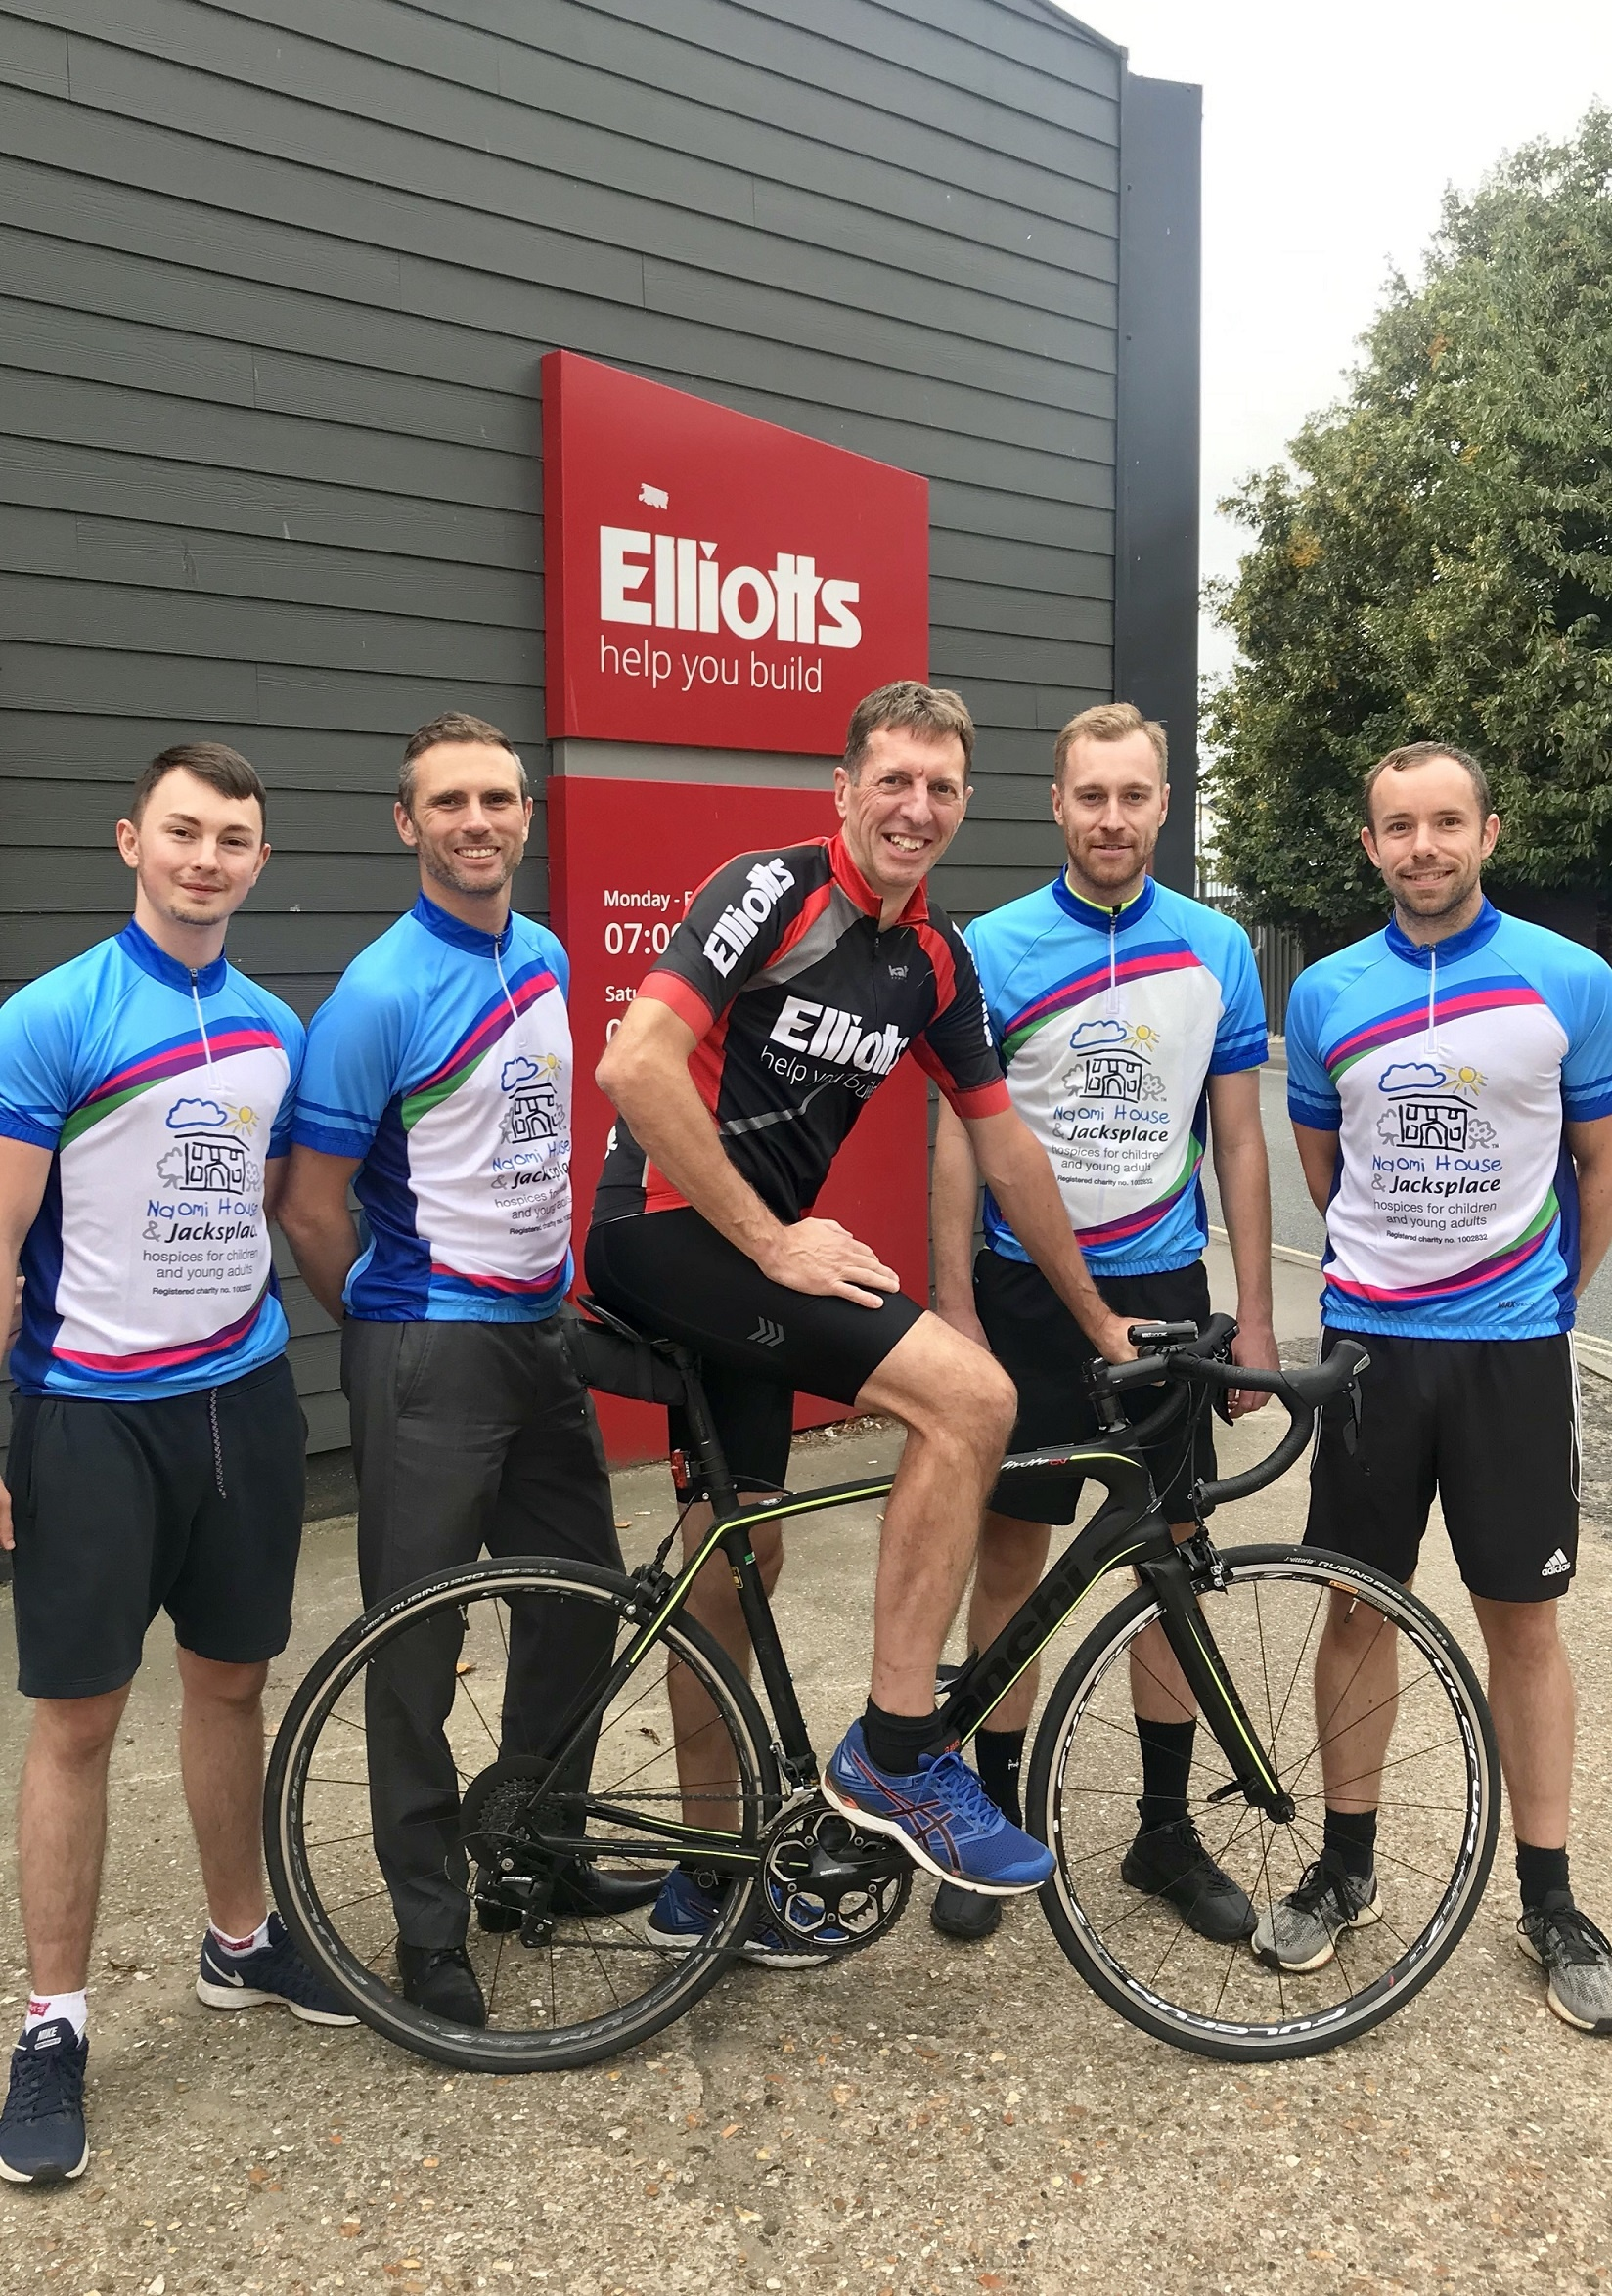 Team Elliotts ready for the Mont Ventoux challenge!